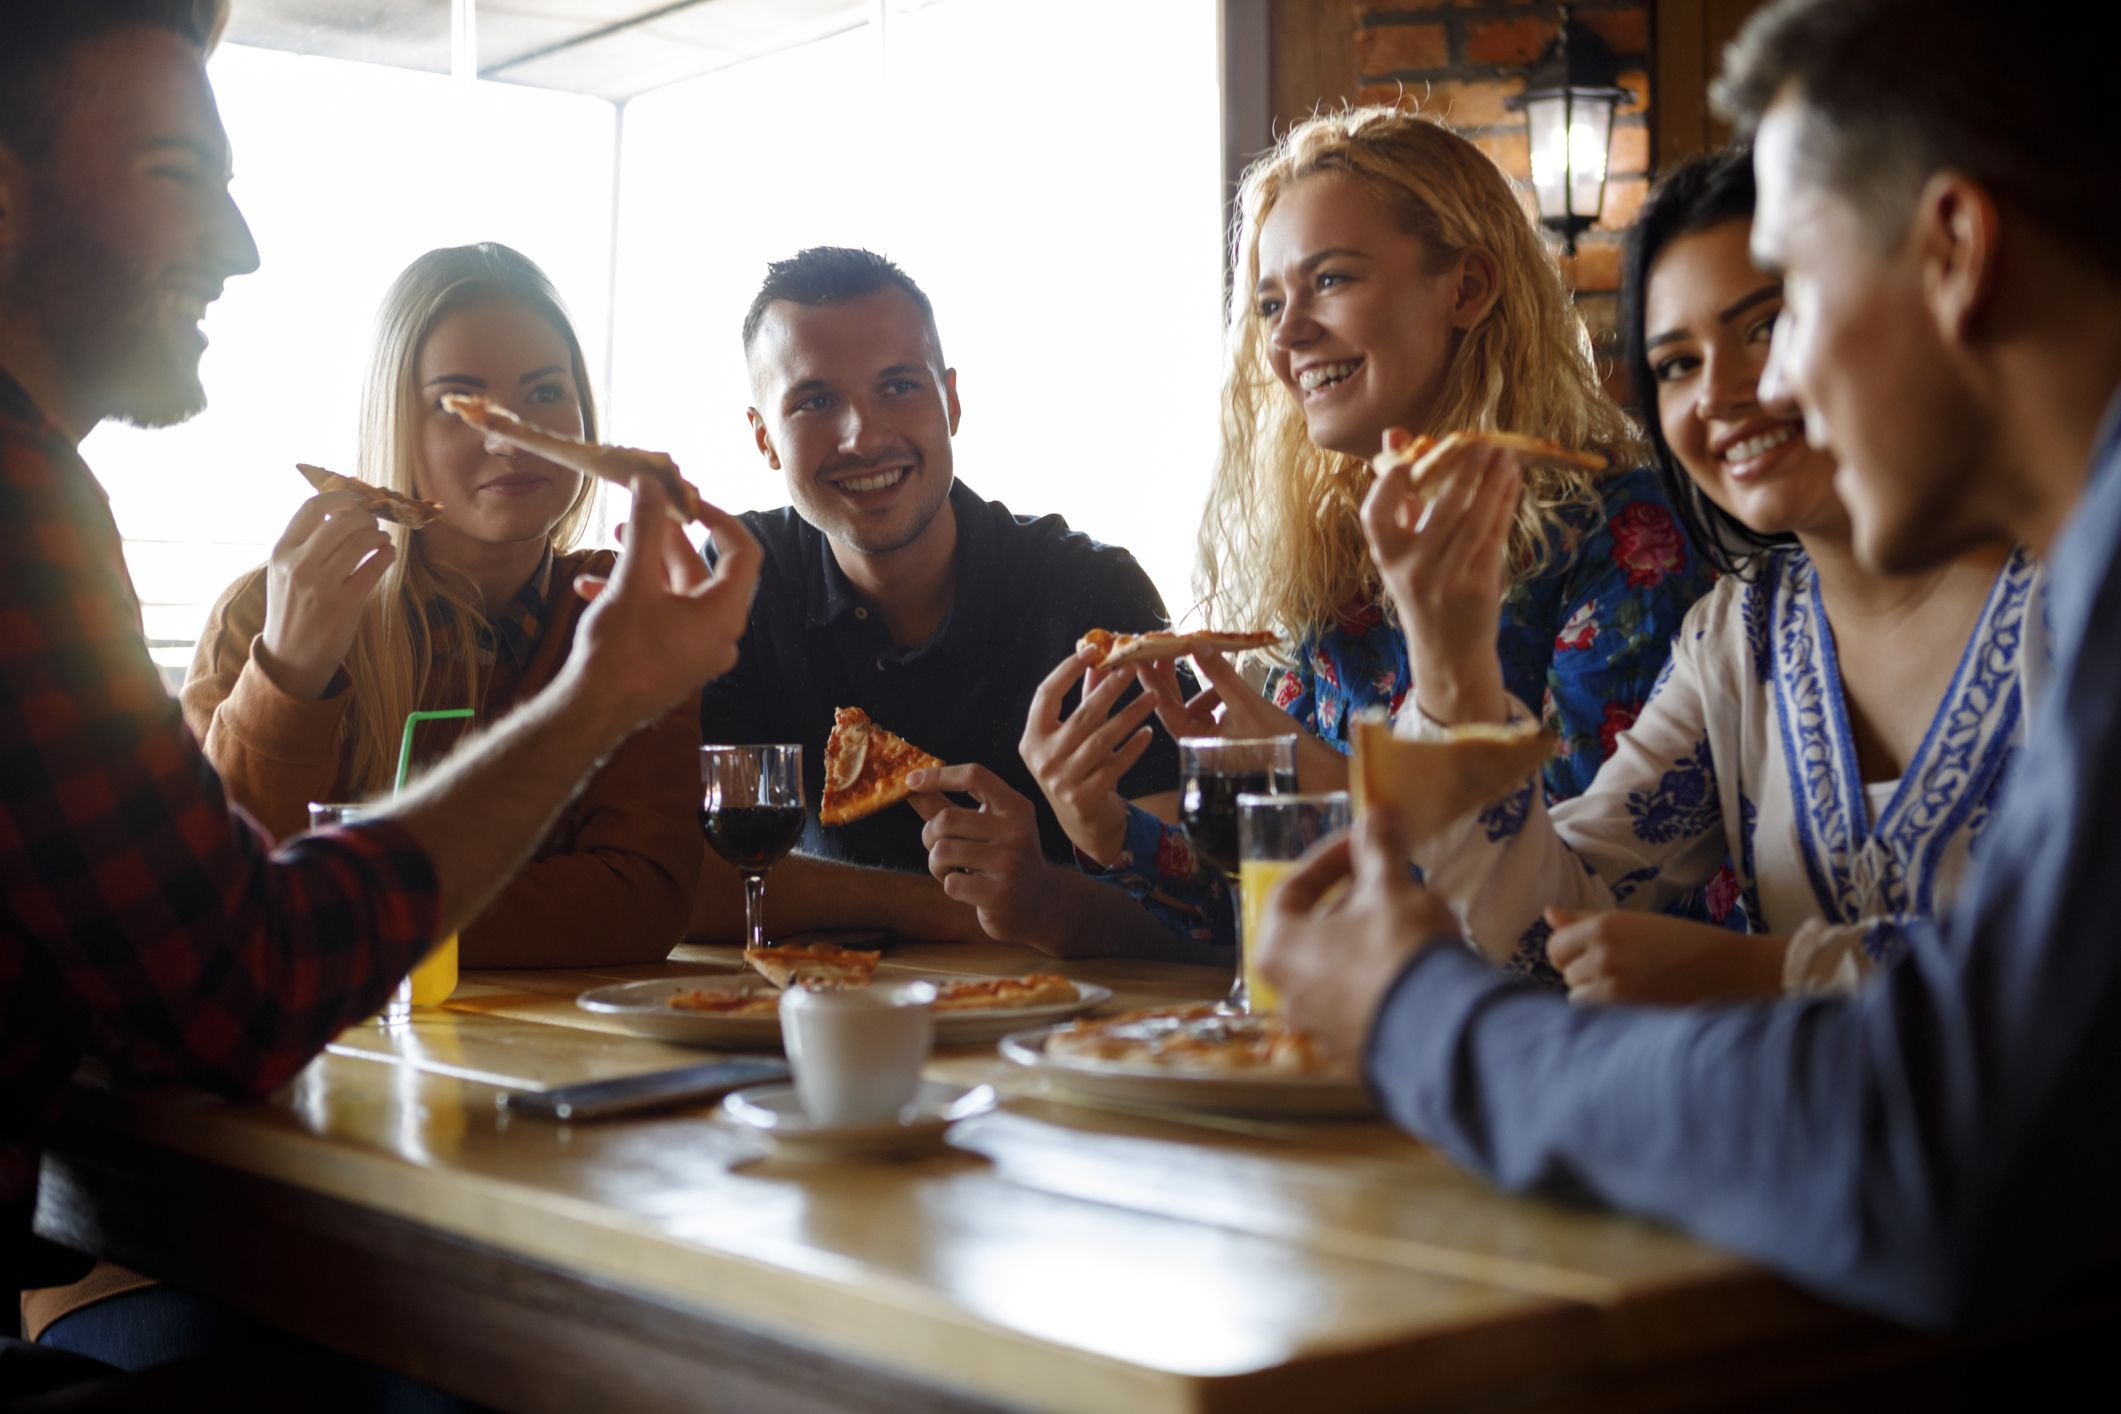 Group of friends having pizza